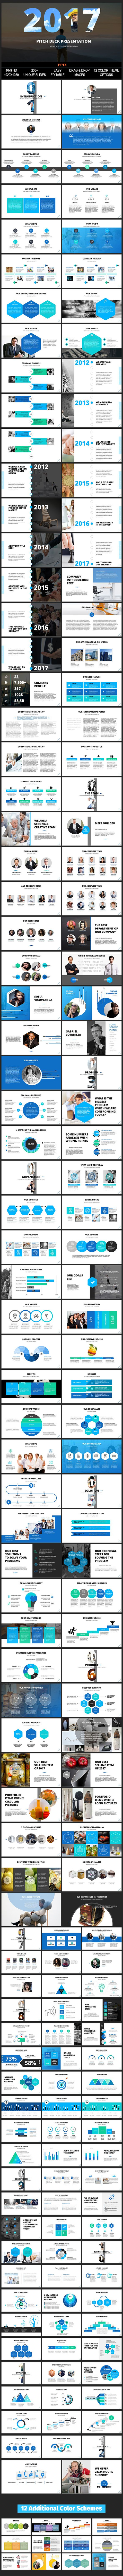 2017 Pitch Deck PowerPoint Presentation Template - #PowerPoint Templates Presentation #Templates Download here: https://graphicriver.net/item/2017-pitch-deck-powerpoint-presentation-template/19399795?ref=alena994